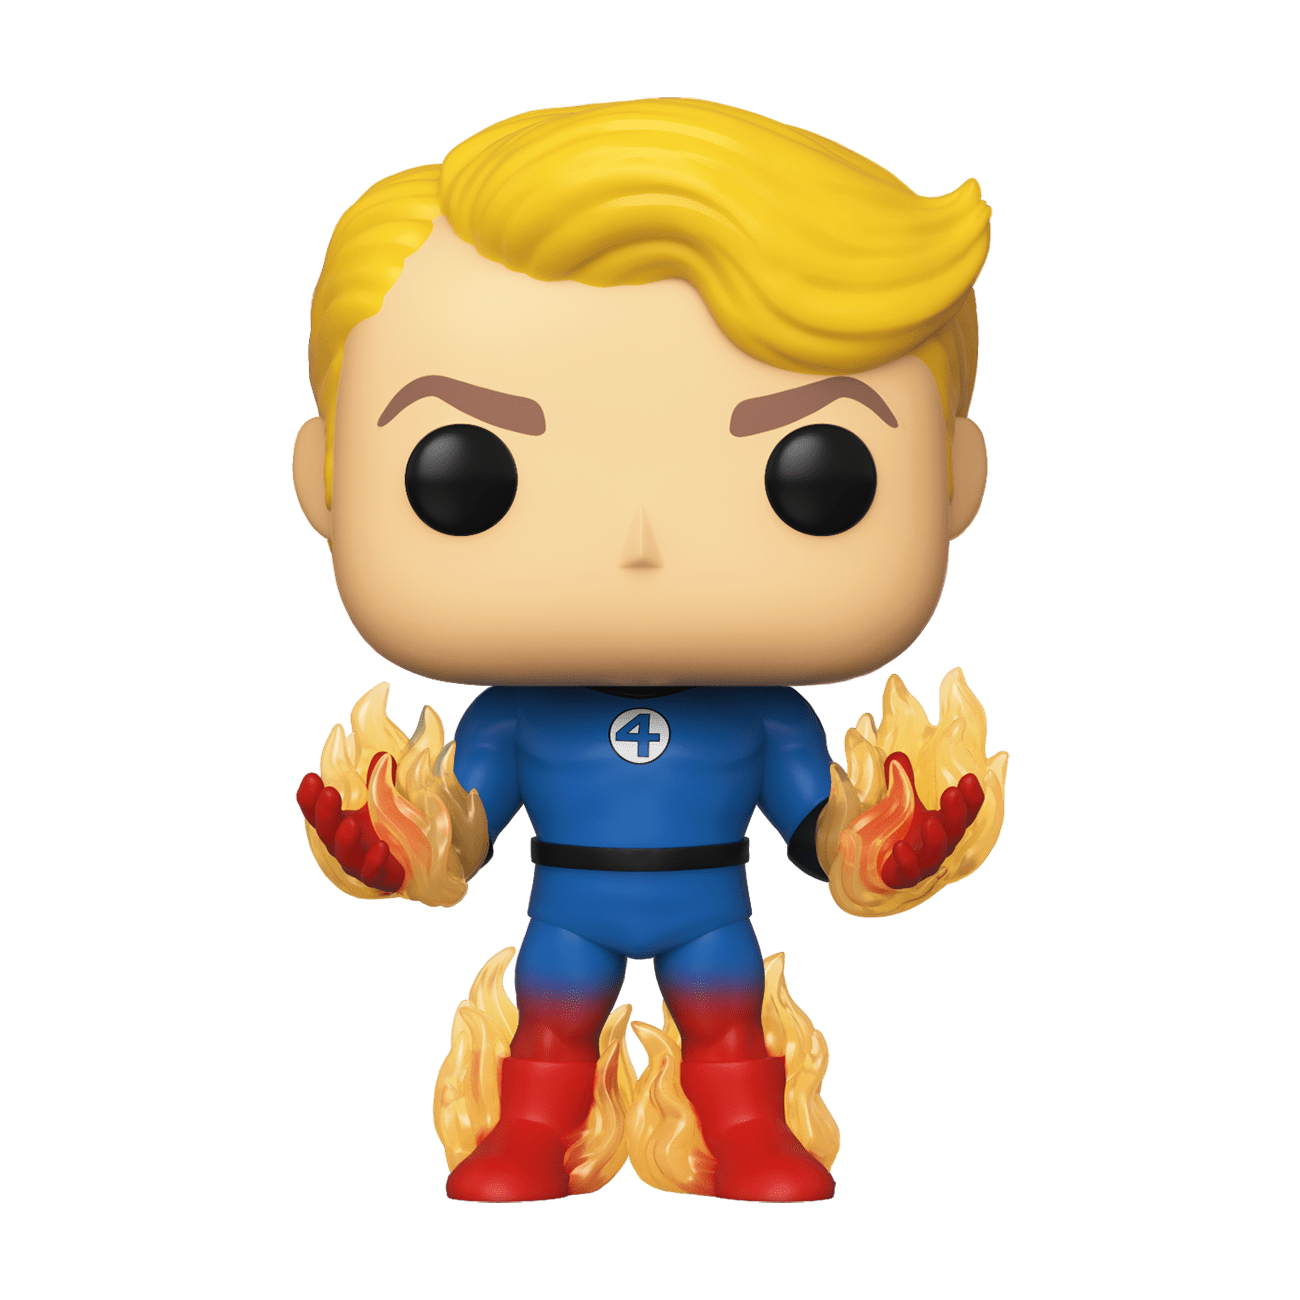 Funko Marvel Fantastic Four Human Torch with Flames Exclusive Pop! Vinyl Figure